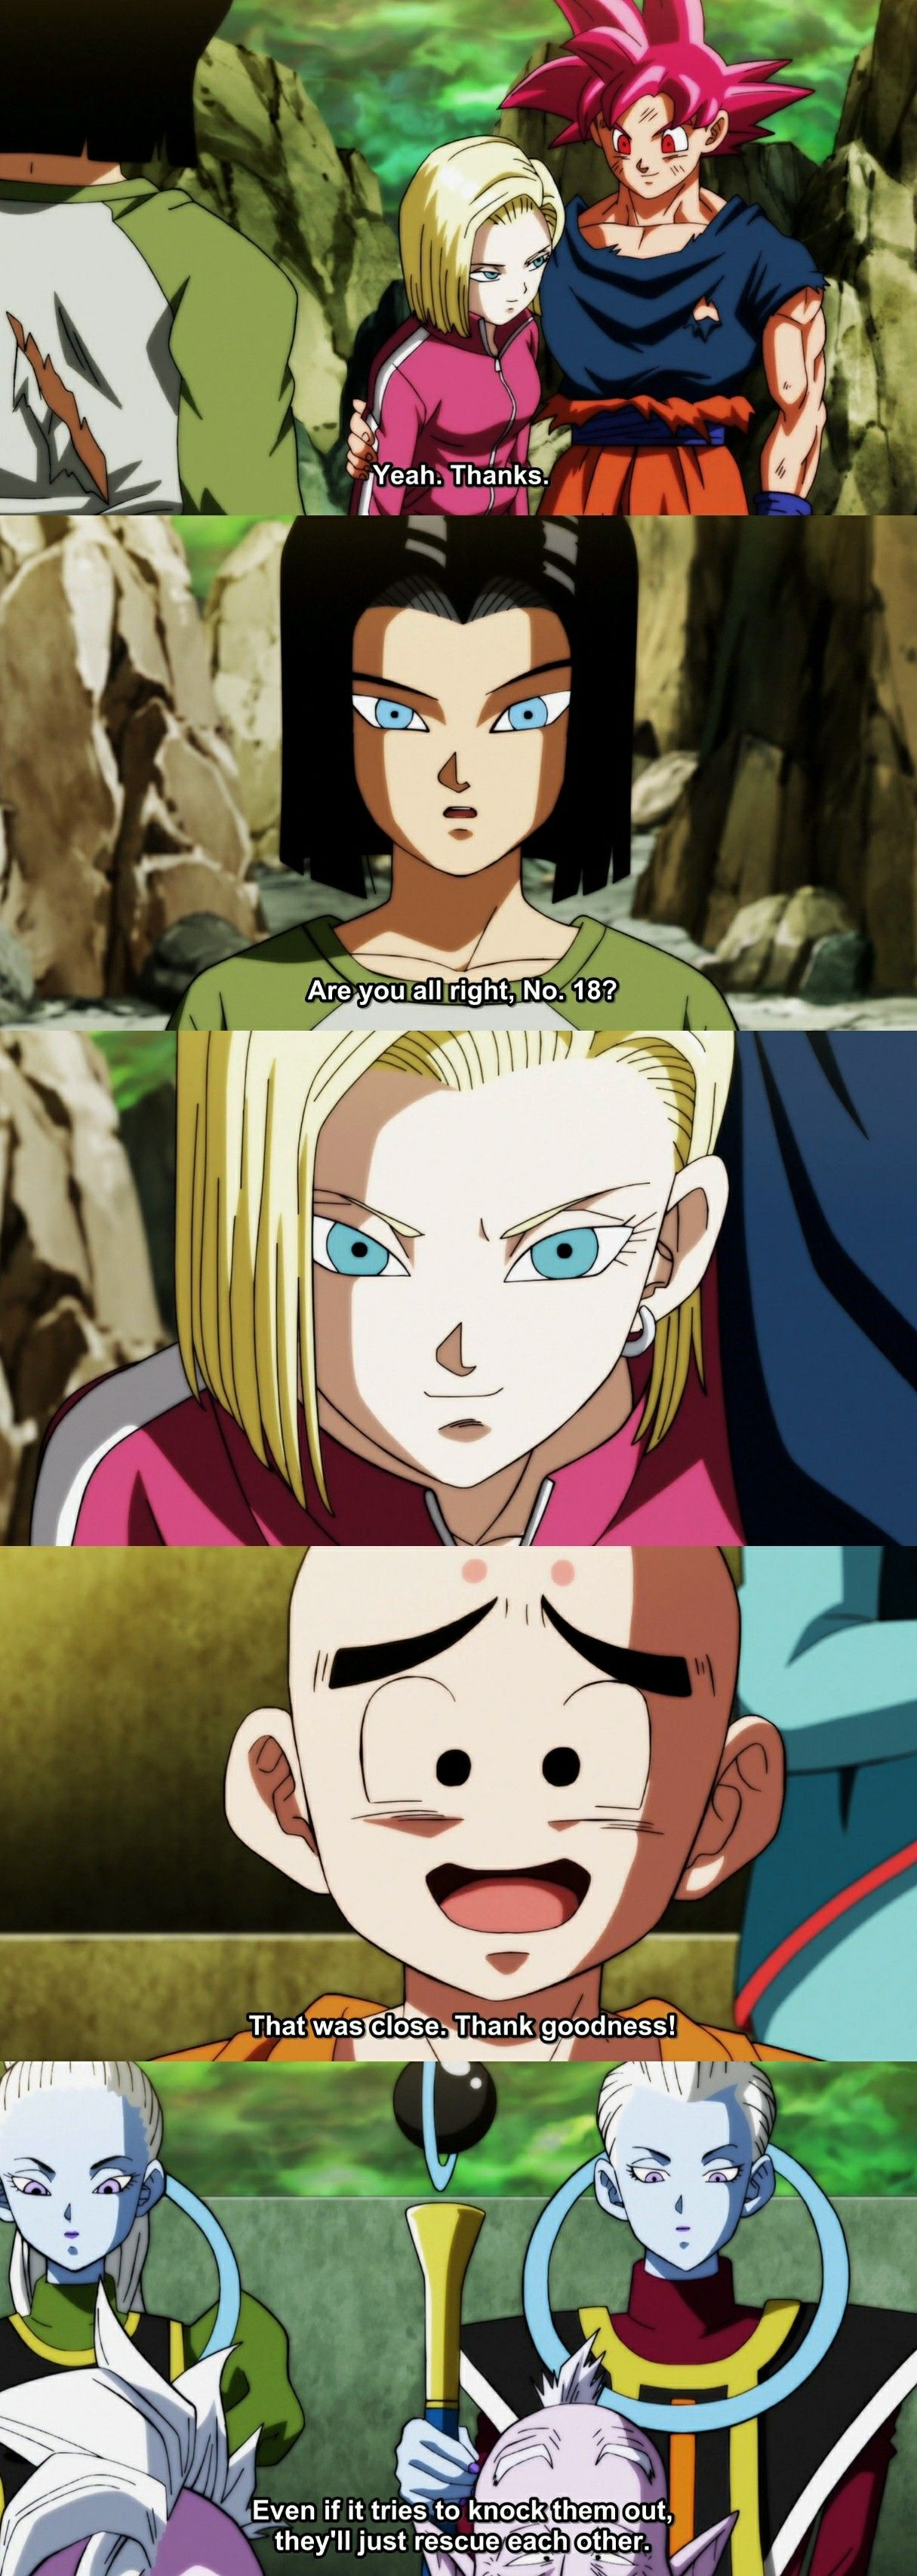 Android 17 Android 18 And Krillin Dragon Ball Wallpaper Iphone Dragon Ball Art Dragon Ball Z